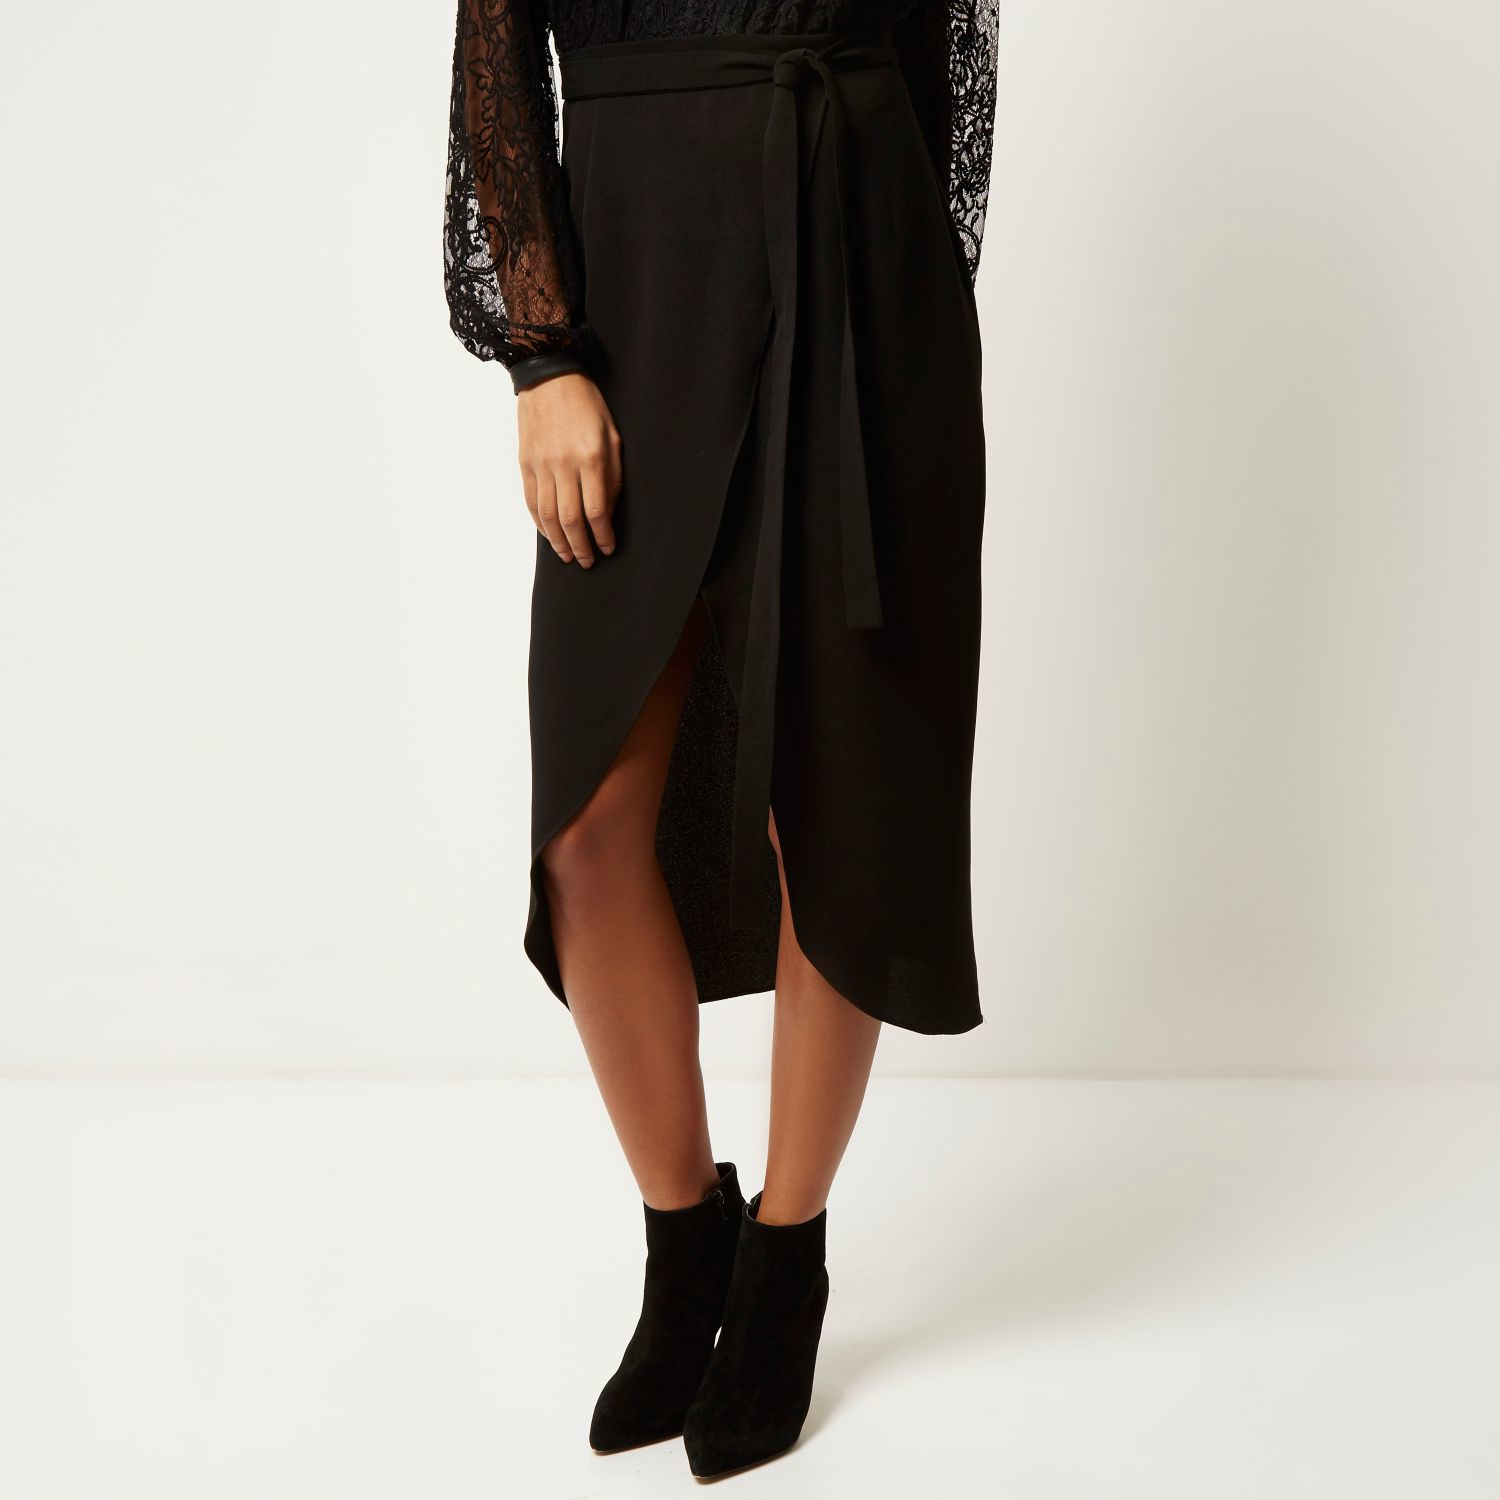 River island Black Woven Wrap Midi Skirt in Black | Lyst